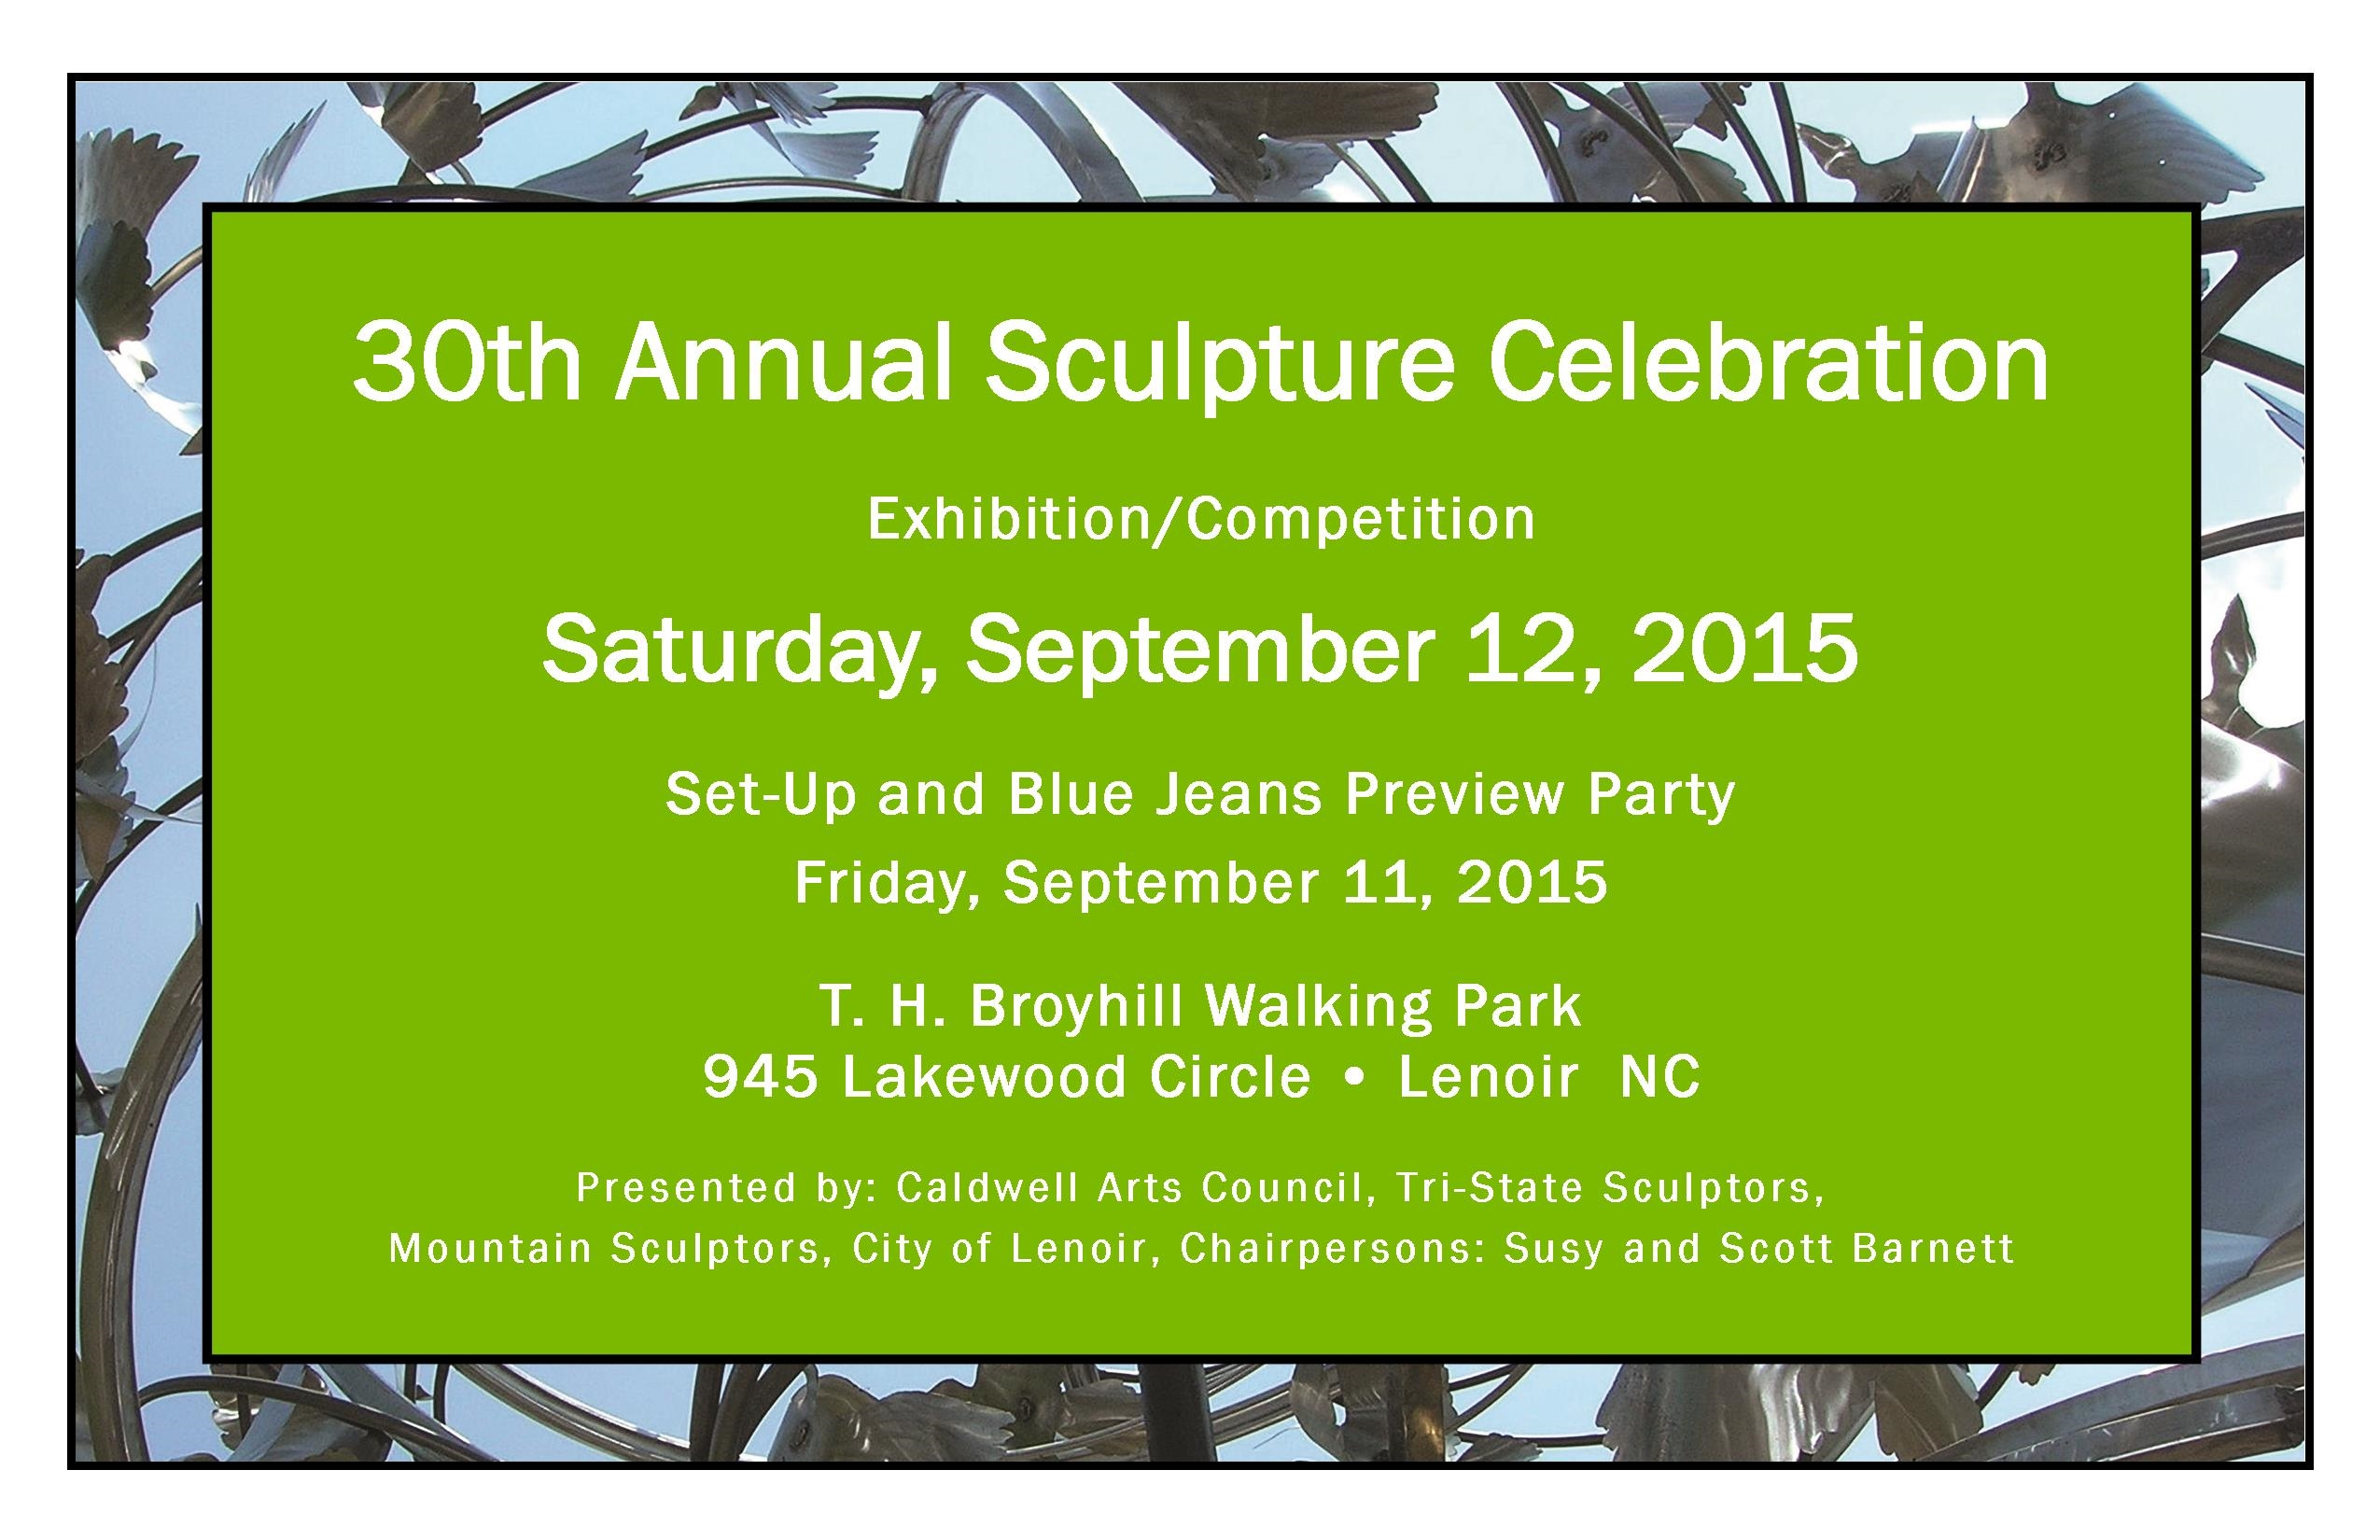 30th Annual Sculpture Celebration